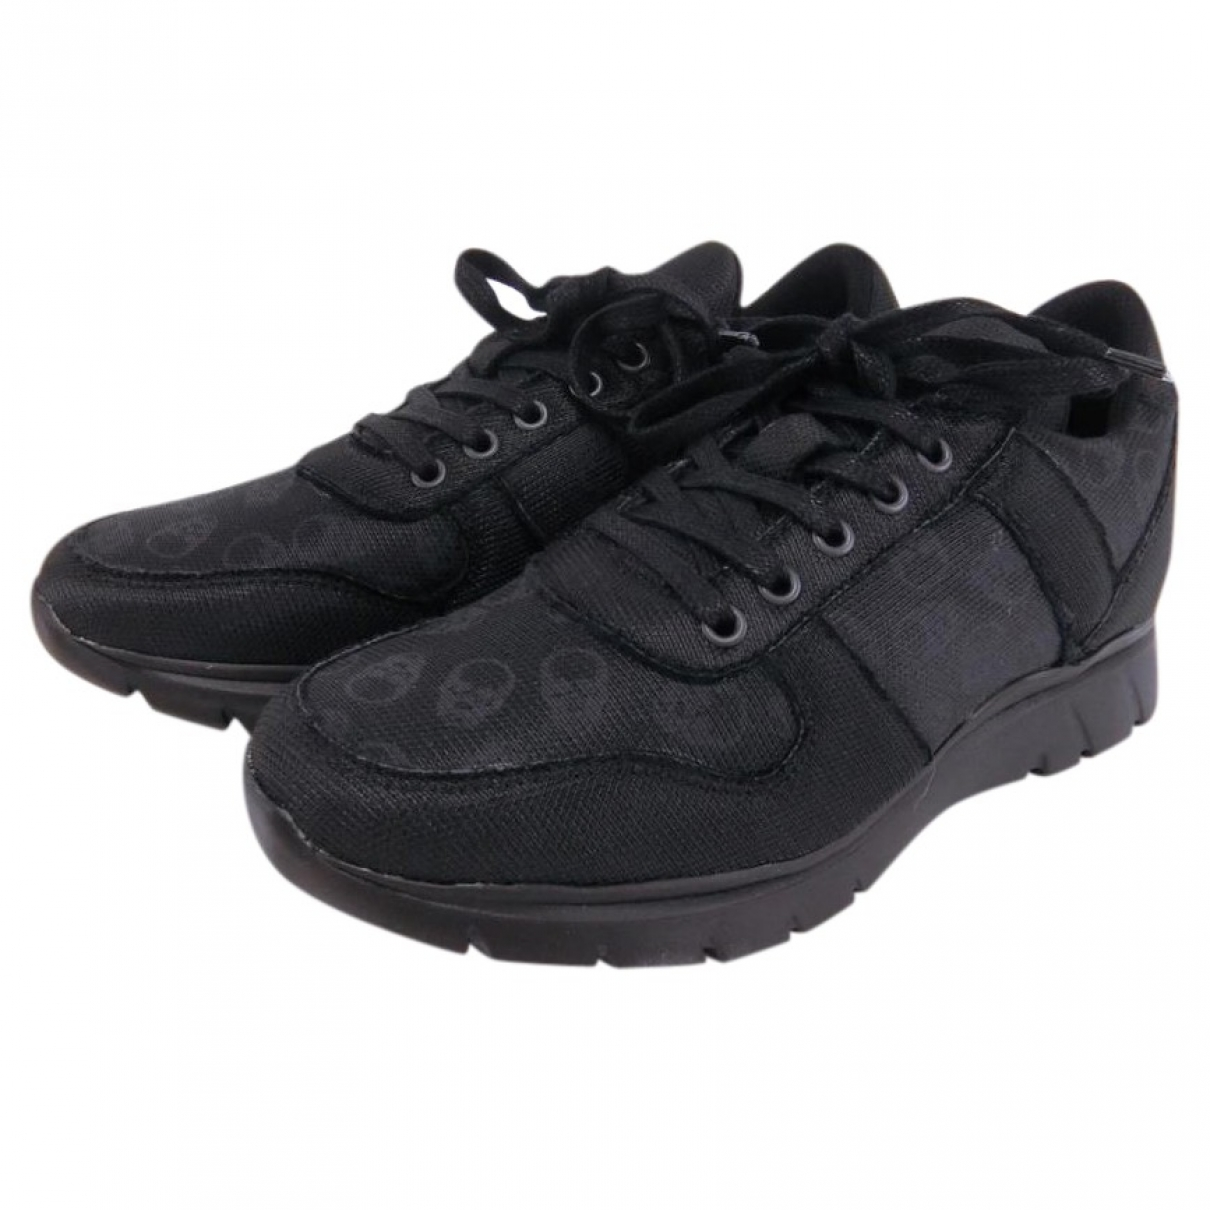 Lucien Pellat Finet \N Black Leather Trainers for Women 5.5 US